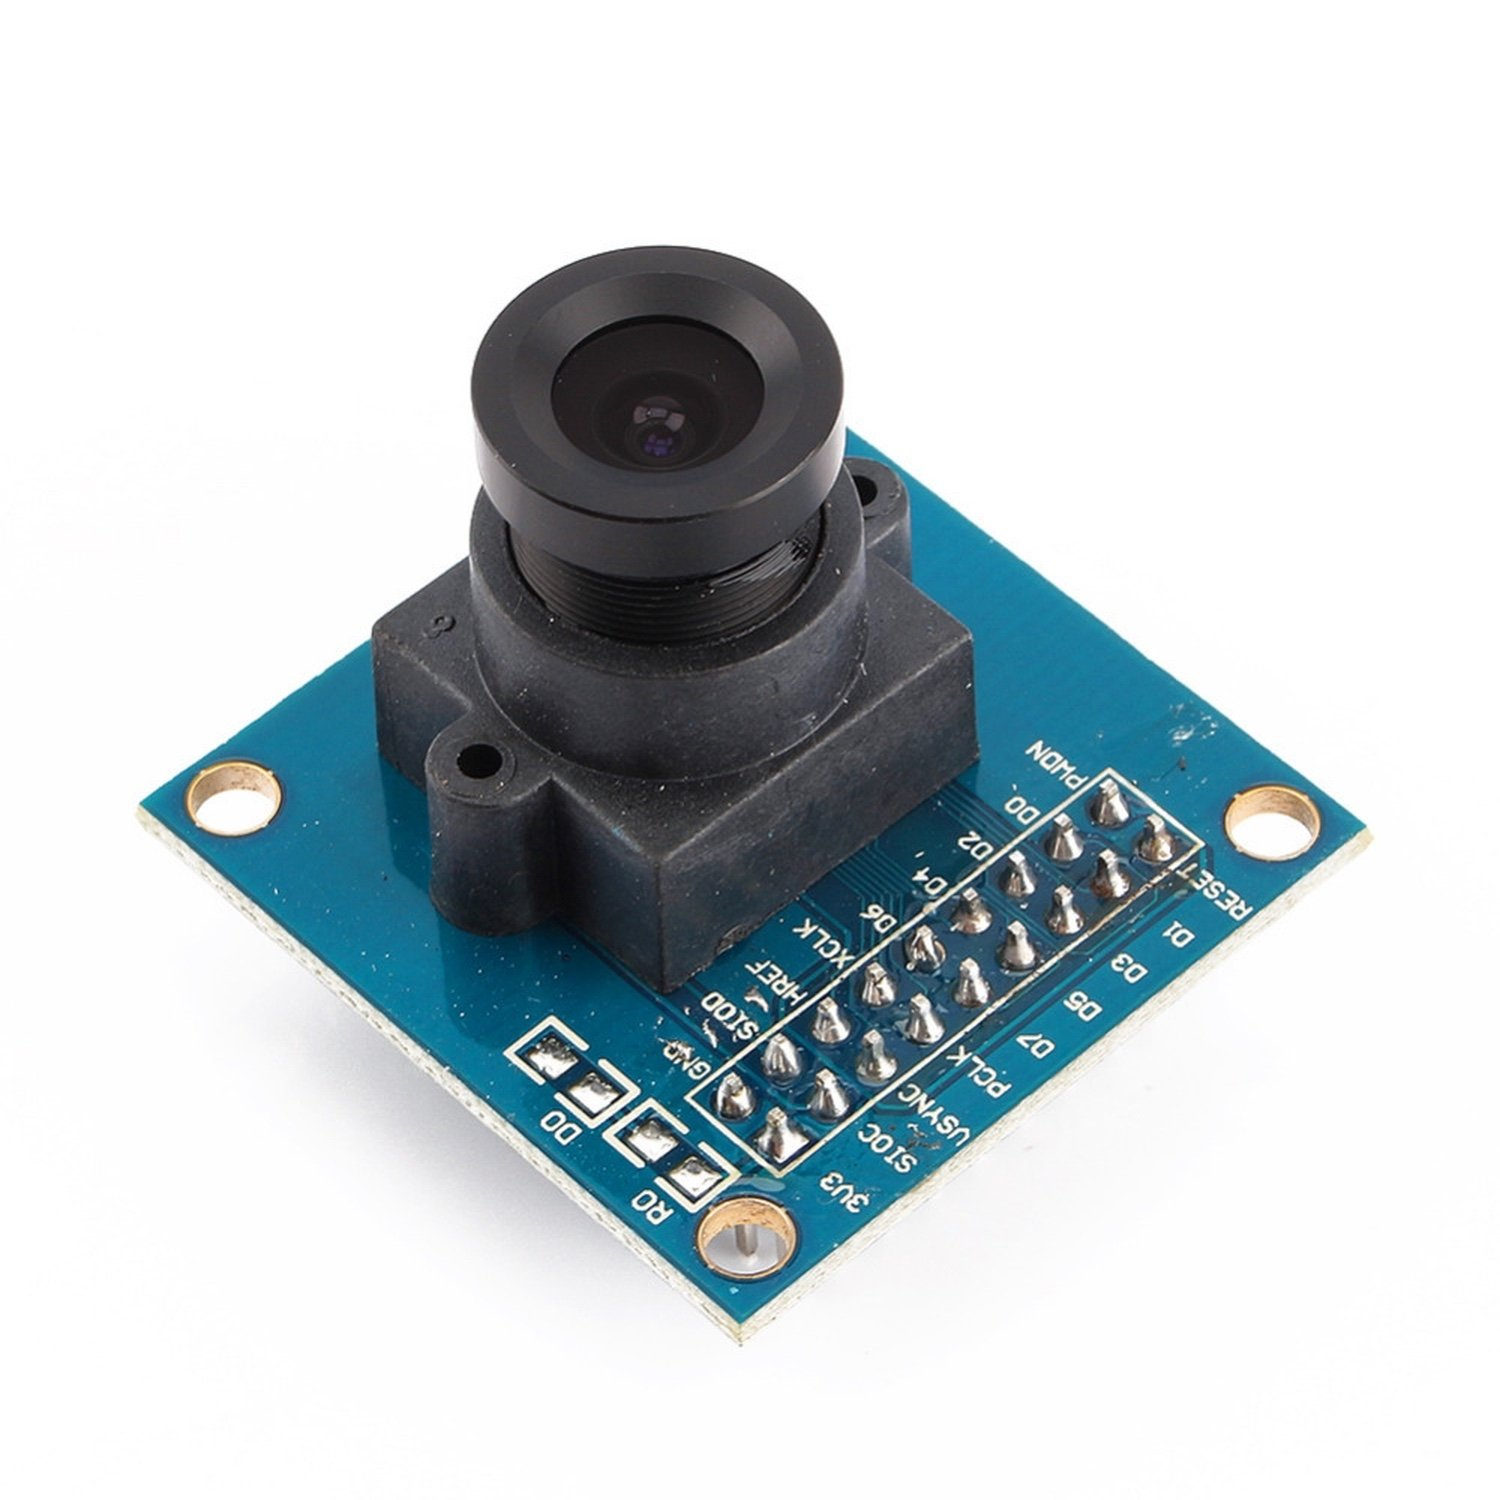 цена на VGA OV7670 Camera Module Lens CMOS SCCB Compatible W/I2C Interface 640X480 Support VGA CIF